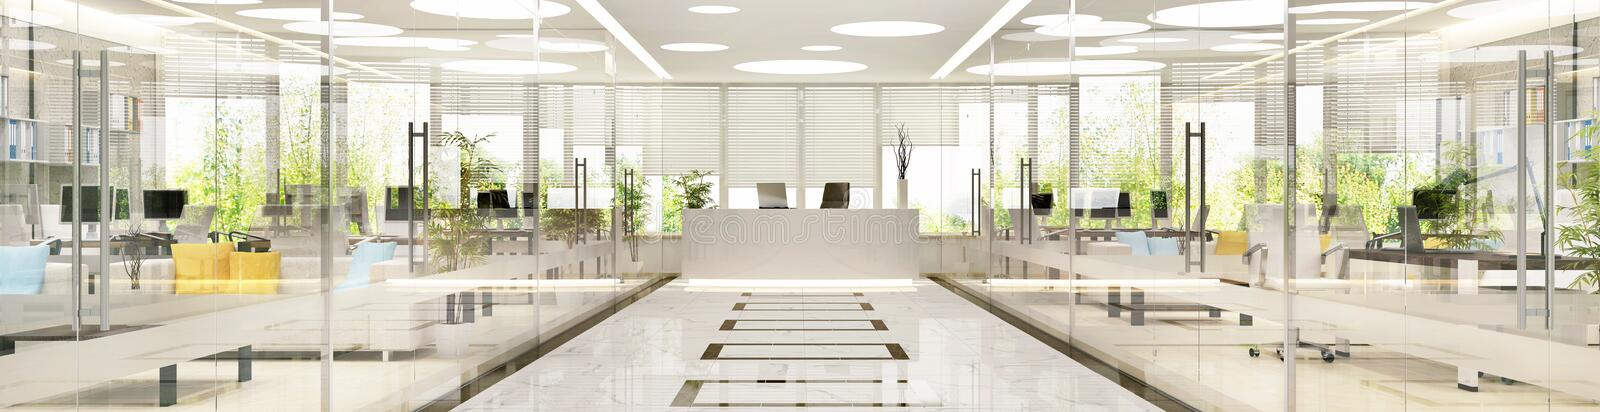 Interior design of large spacious office stock image